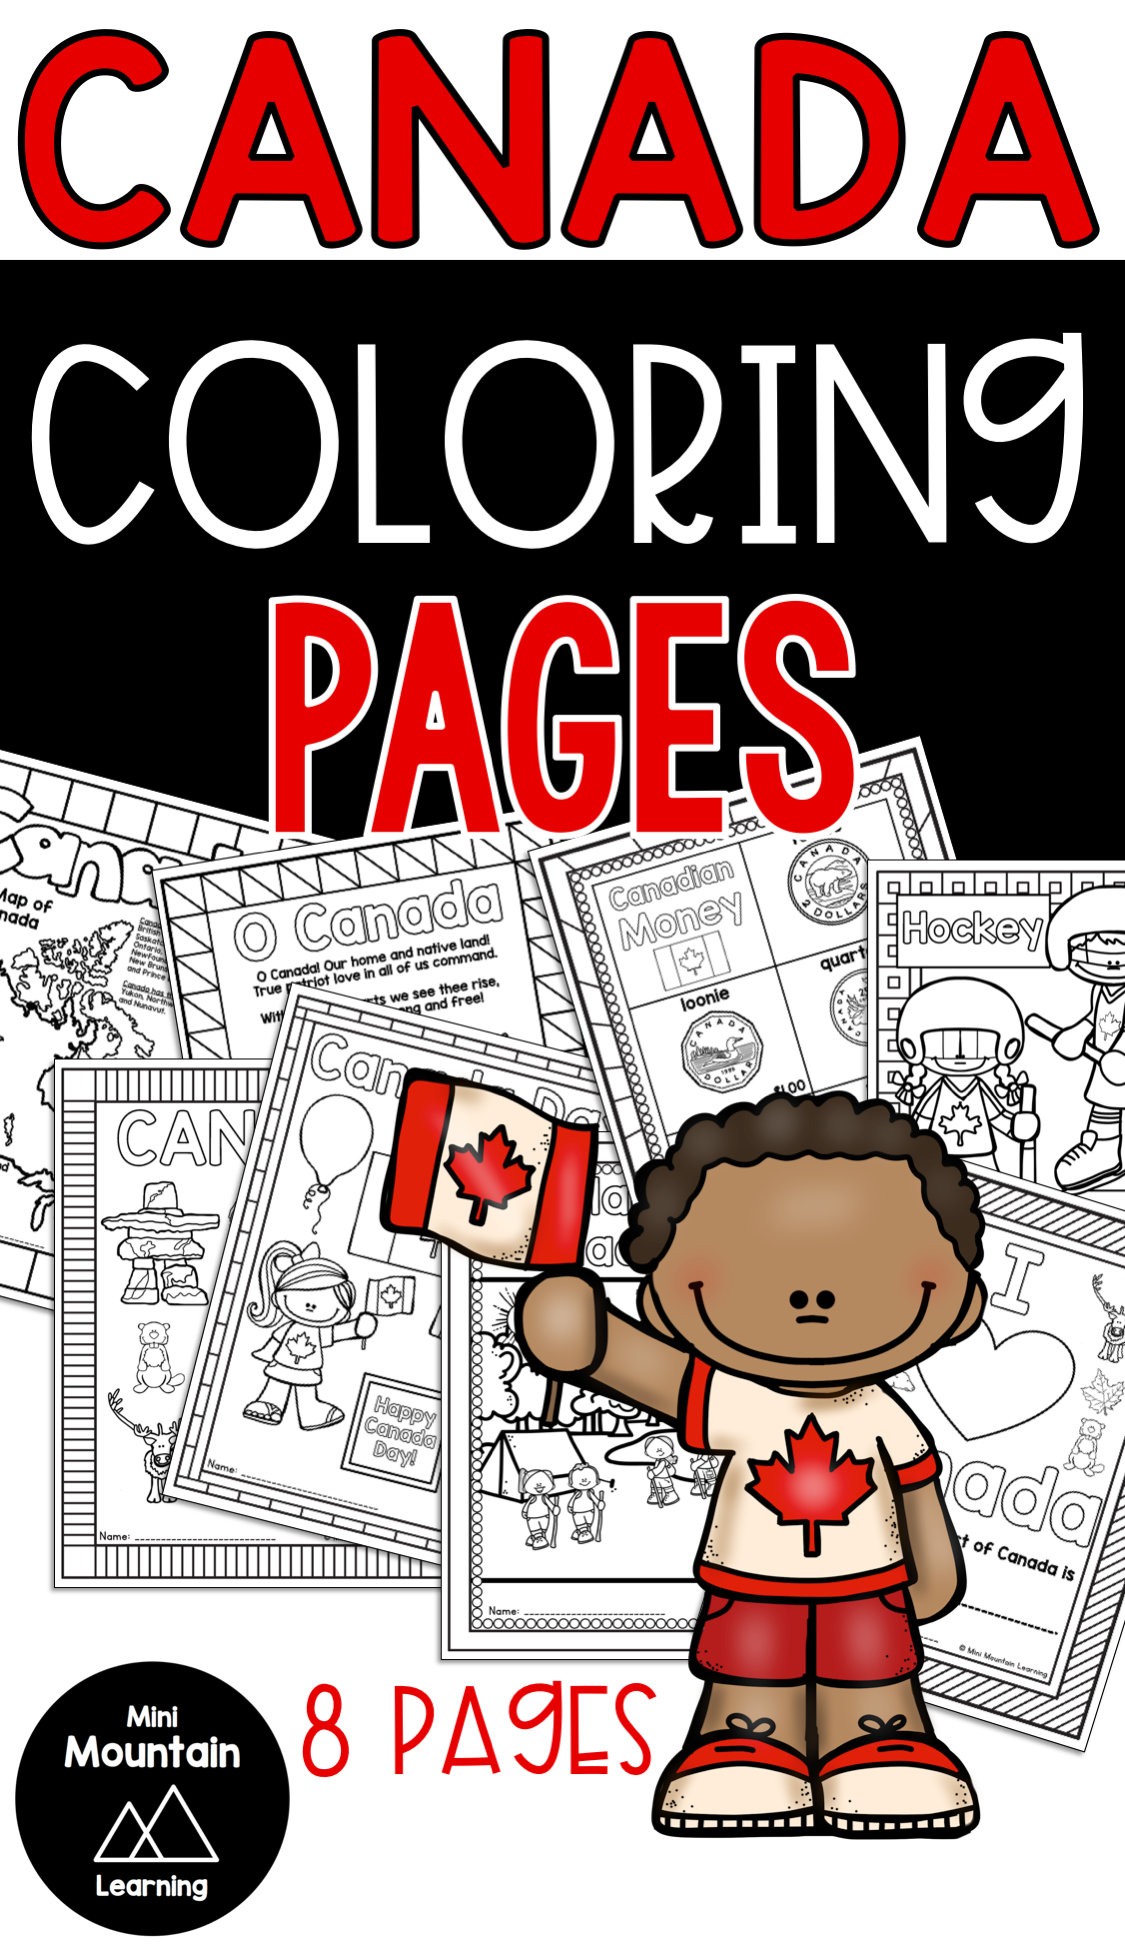 Canada Coloring Pages New year coloring pages, Mothers